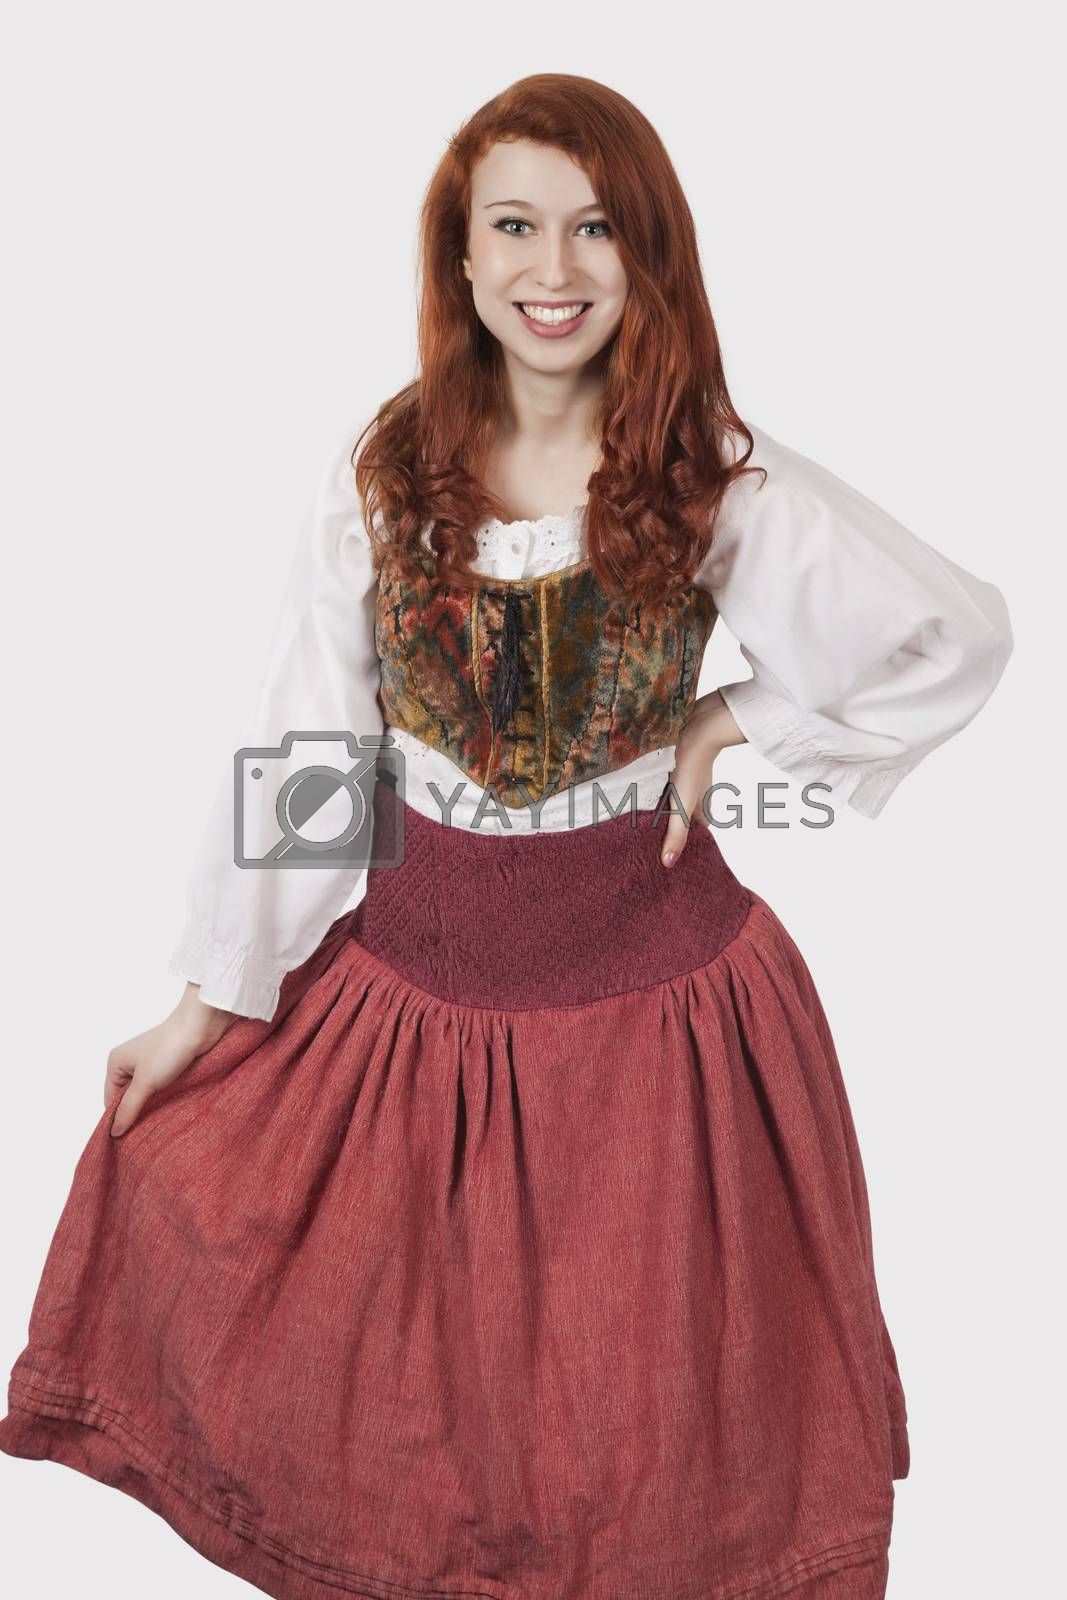 Portrait of young woman in old-fashioned costume standing against gray background